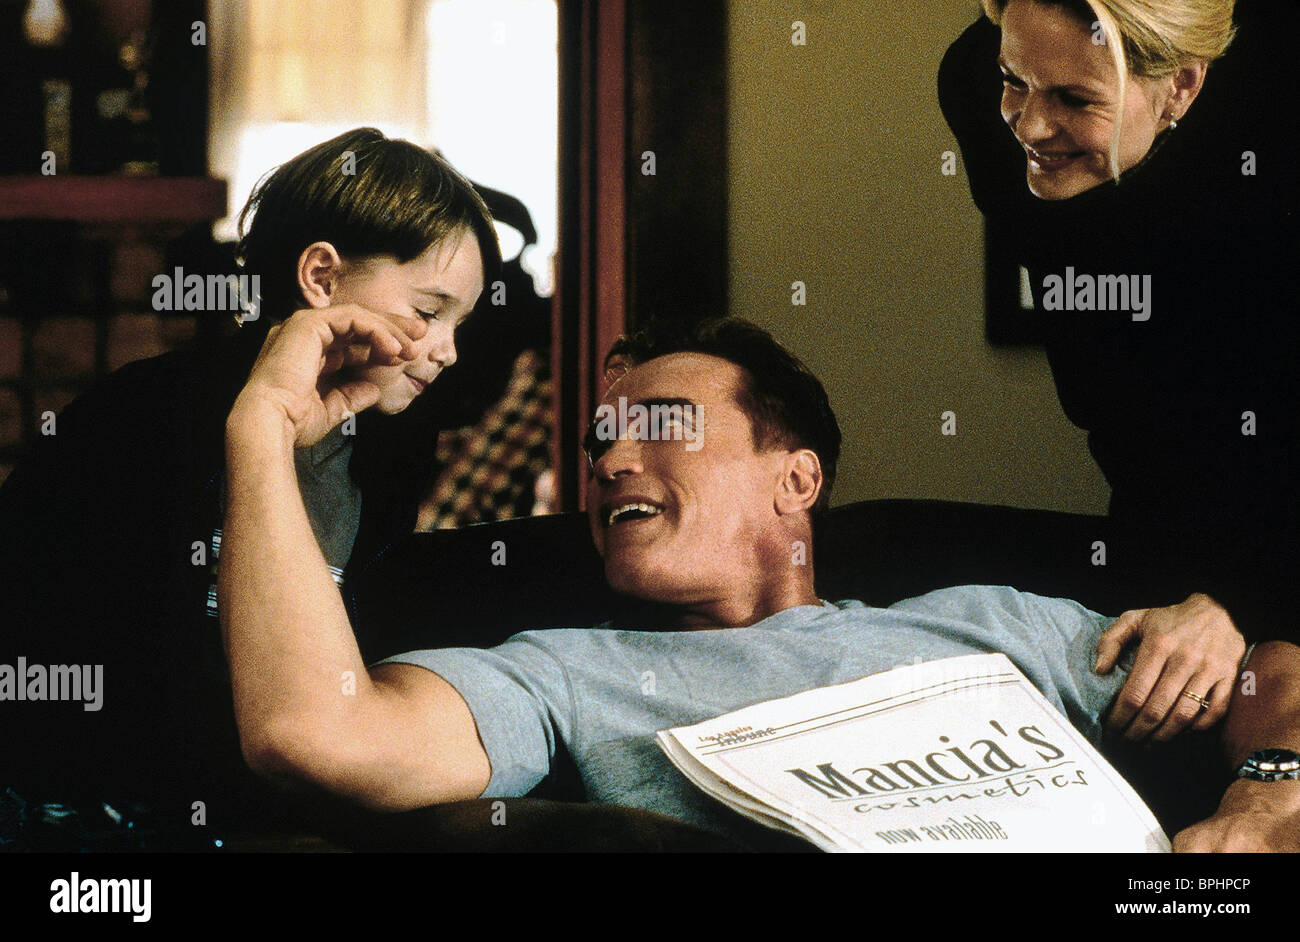 TYLER POSEY ARNOLD SCHWARZENEGGER COLLATERAL DAMAGE (2002) - Stock Image